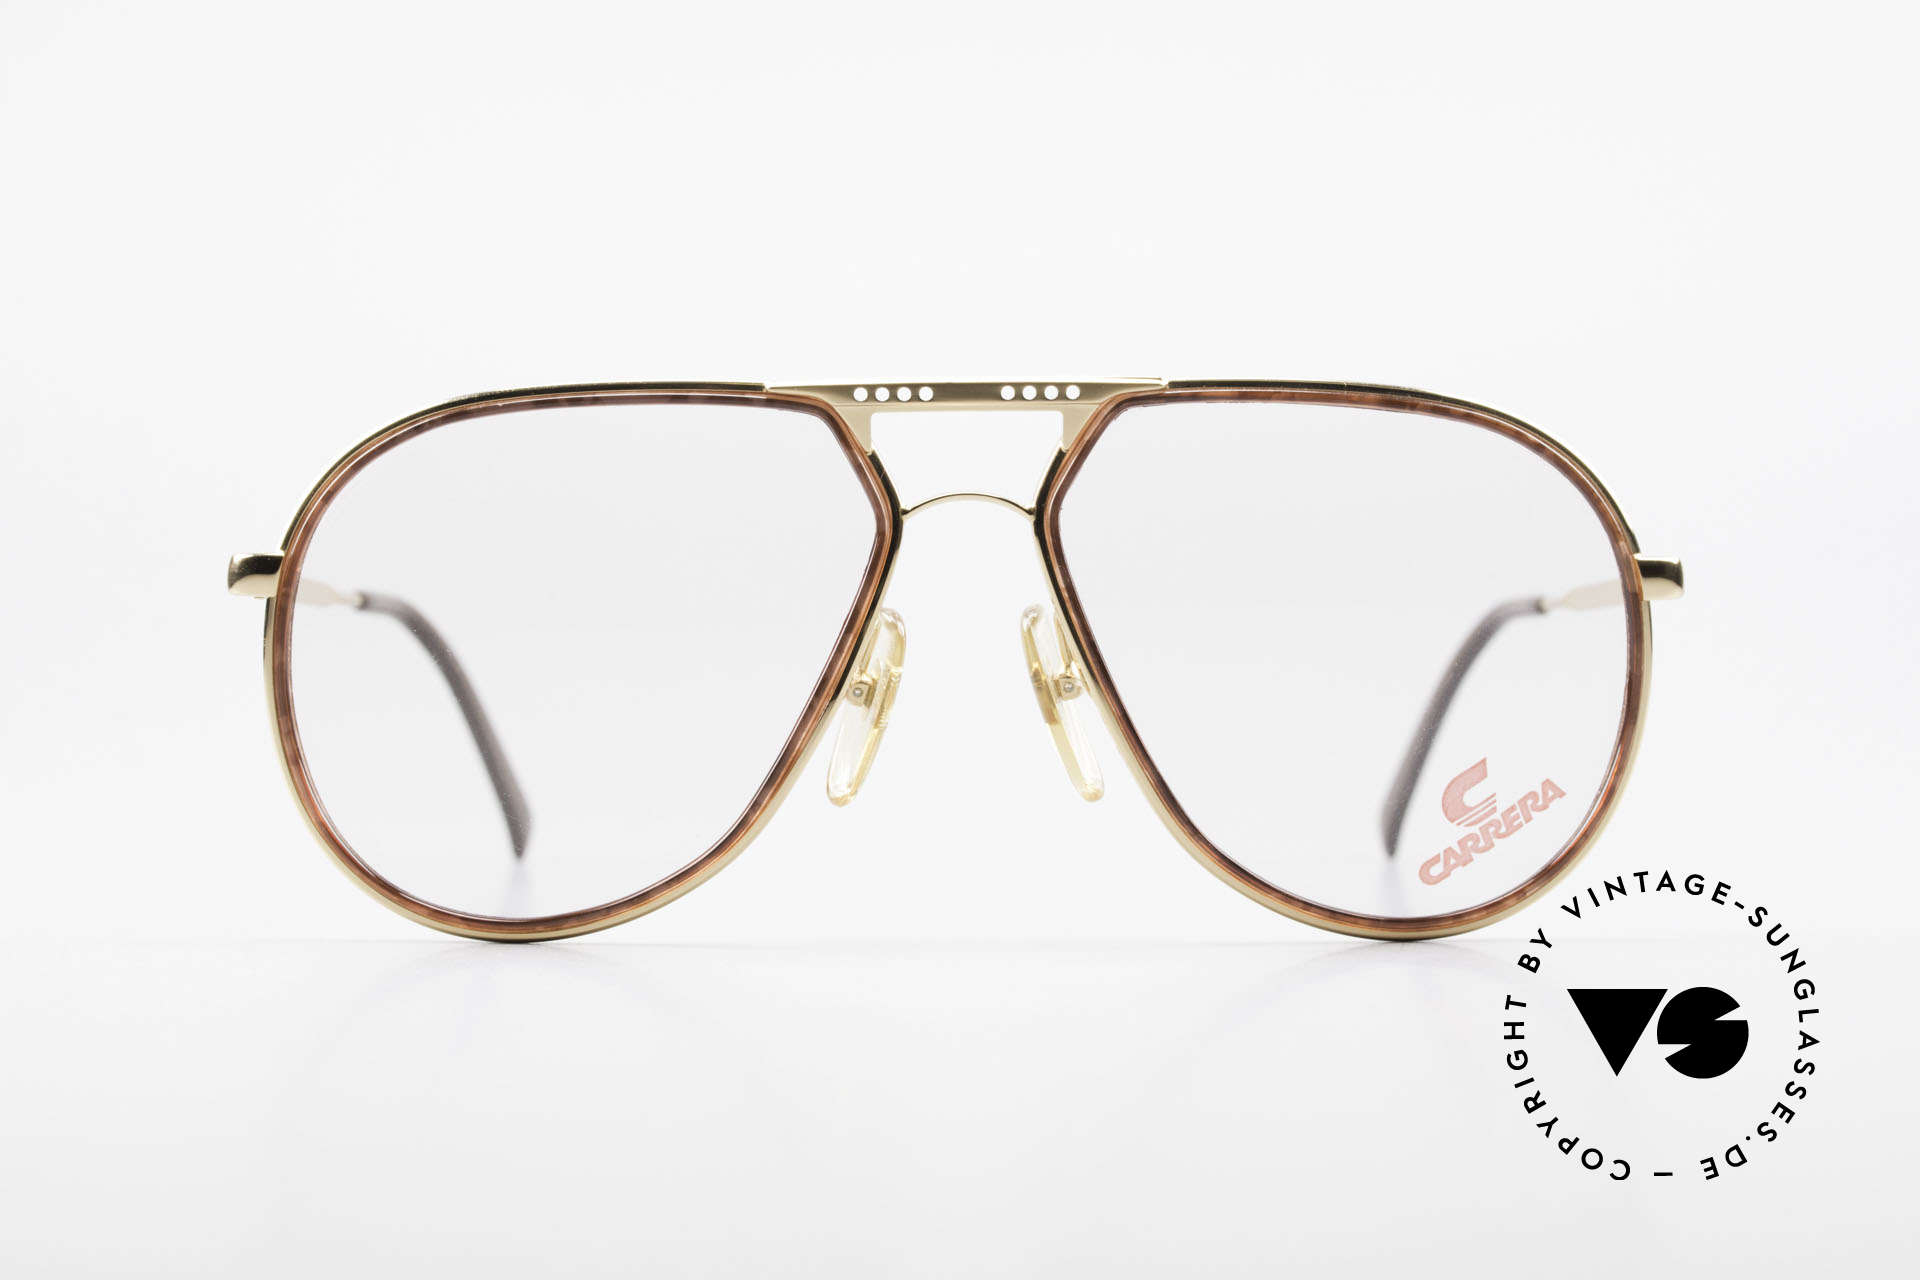 Carrera 5371 Rare Vintage 80's Eyeglasses, sober elegance in styling, coloring and design, Made for Men